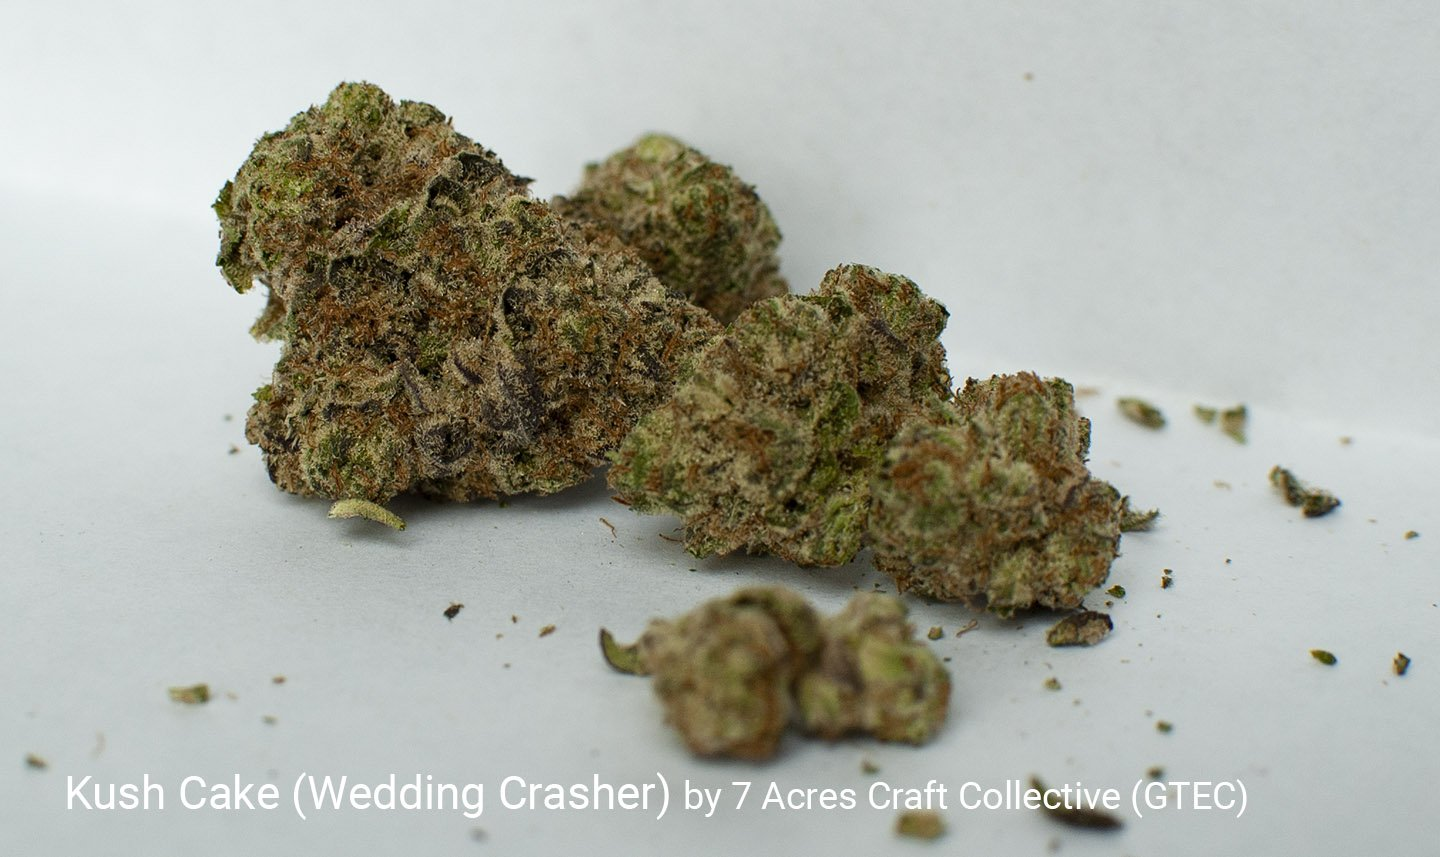 19.39% THC Wedding Crasher by GTEC